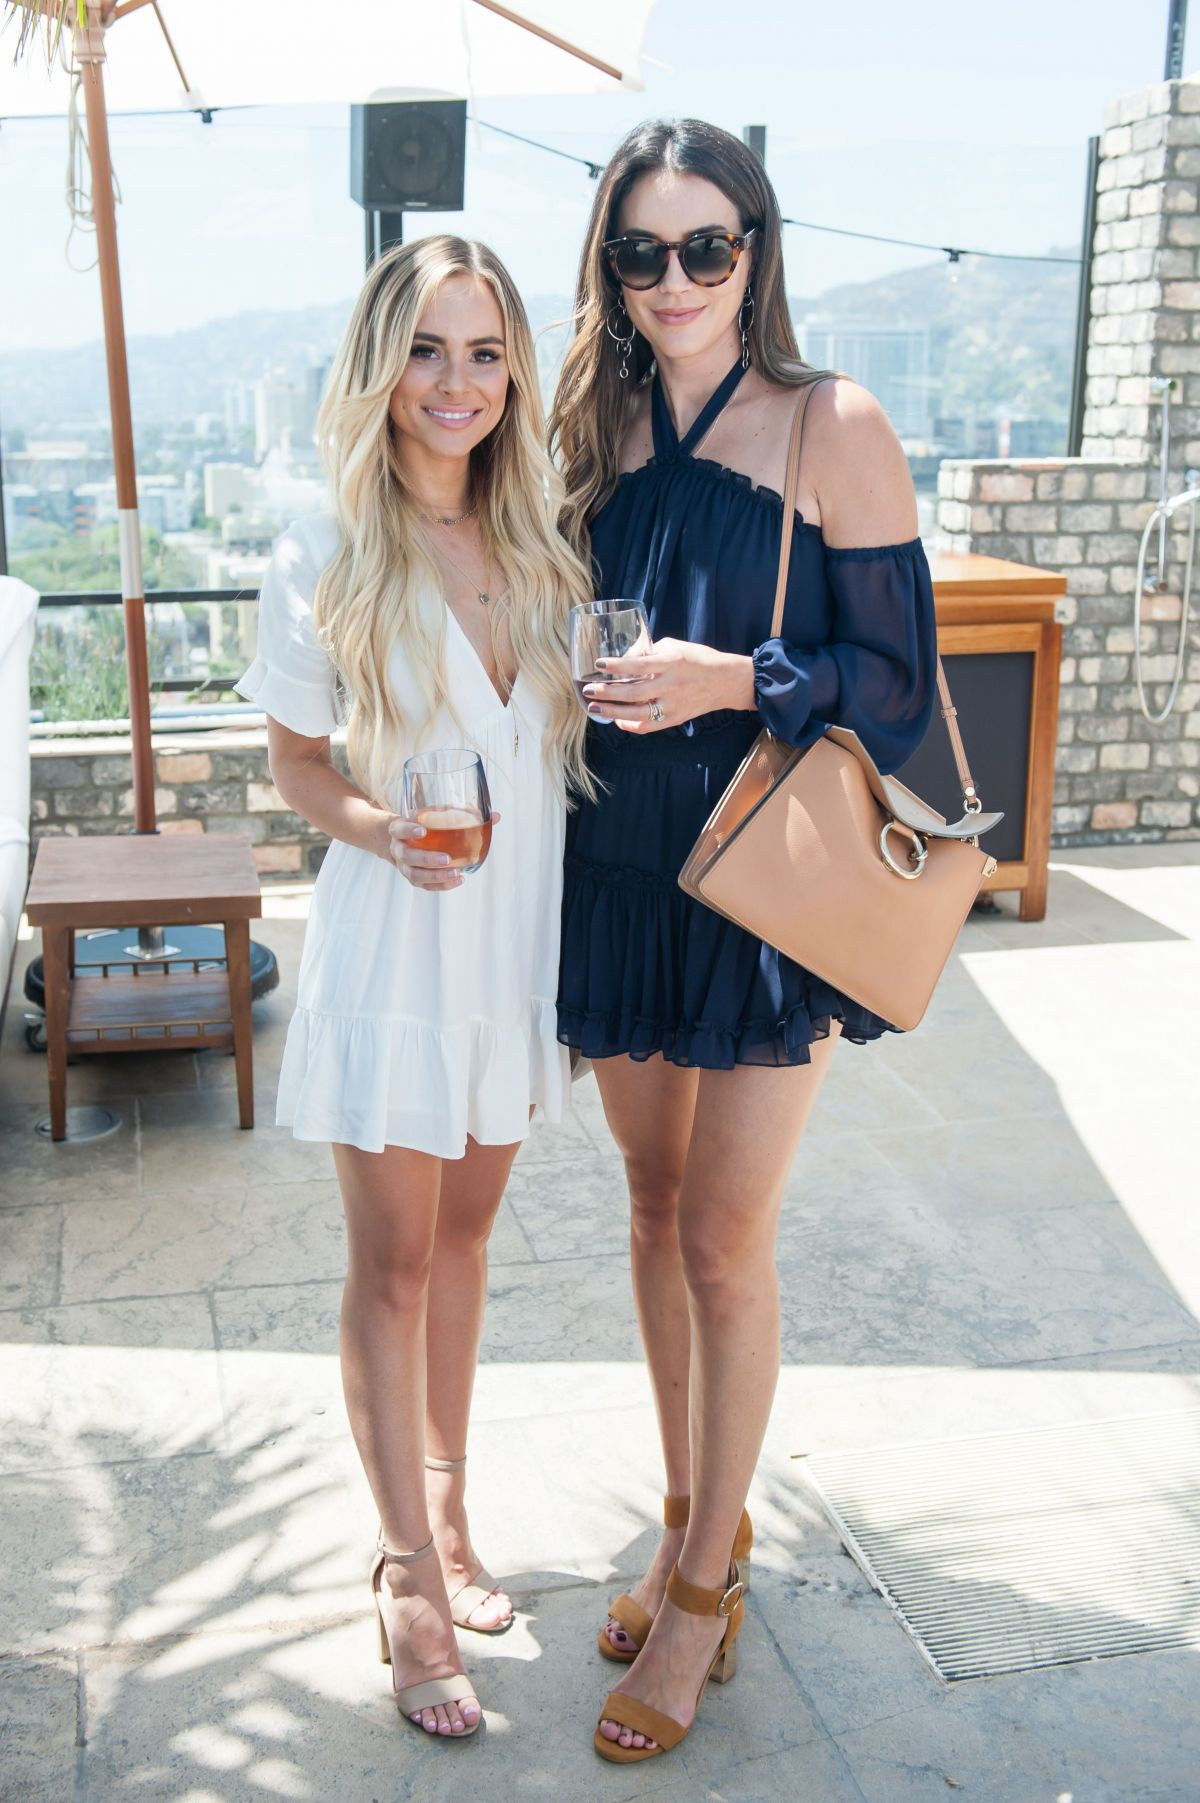 Lauren Bushnell And Amanda Stanton At Sole Society Toasts Friends Fall Fashion In Los Angeles